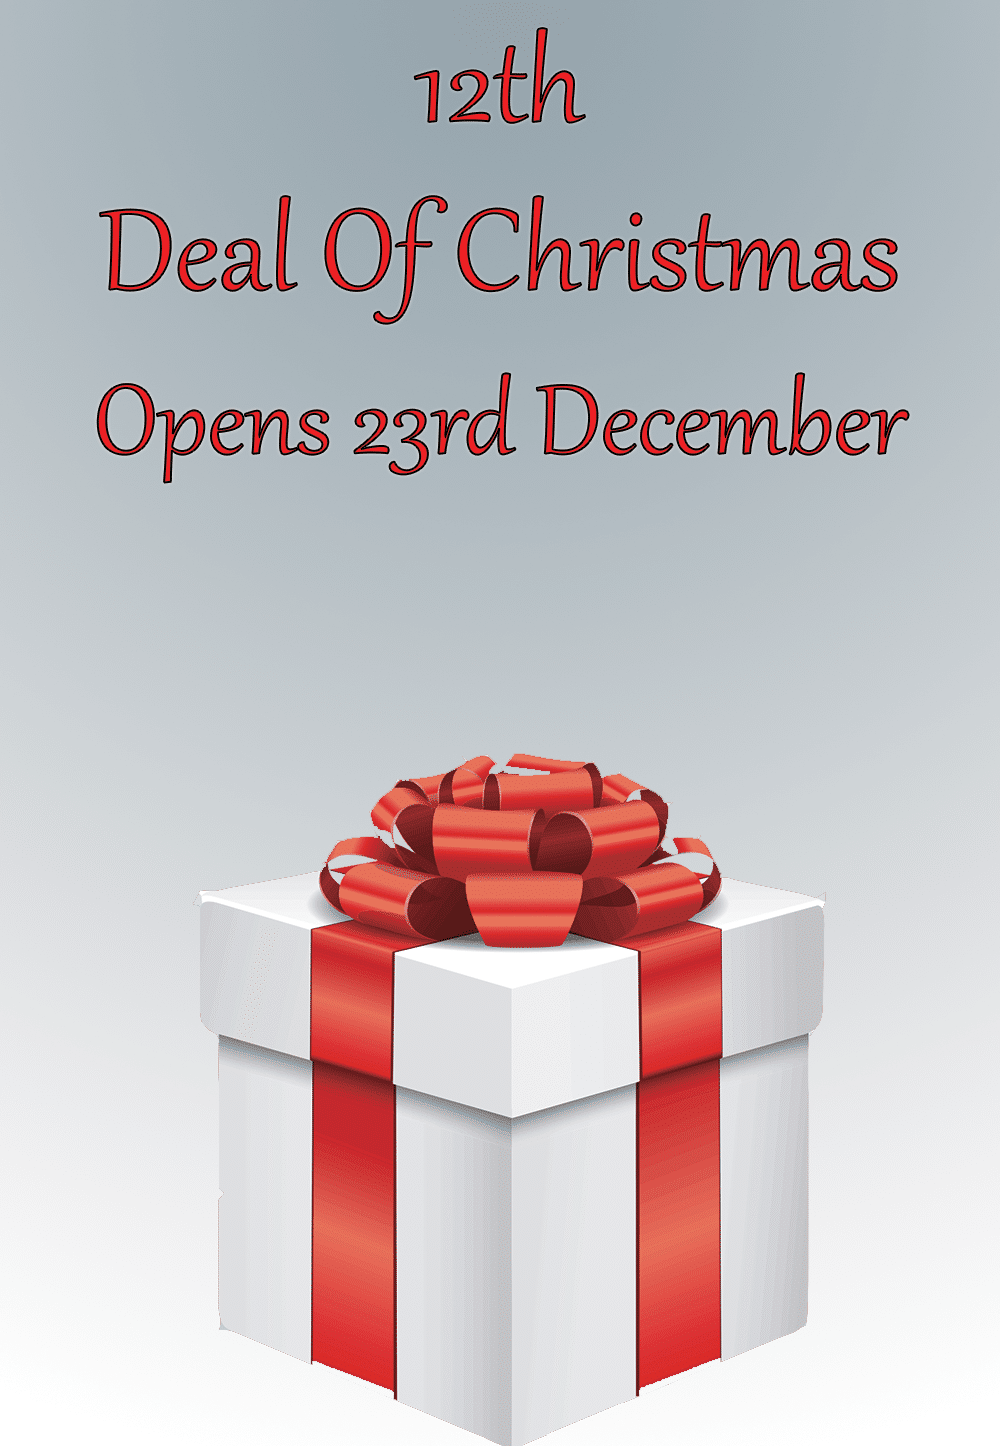 The Tanning Shop 12 Deals Of Christmas - The Tanning Shop